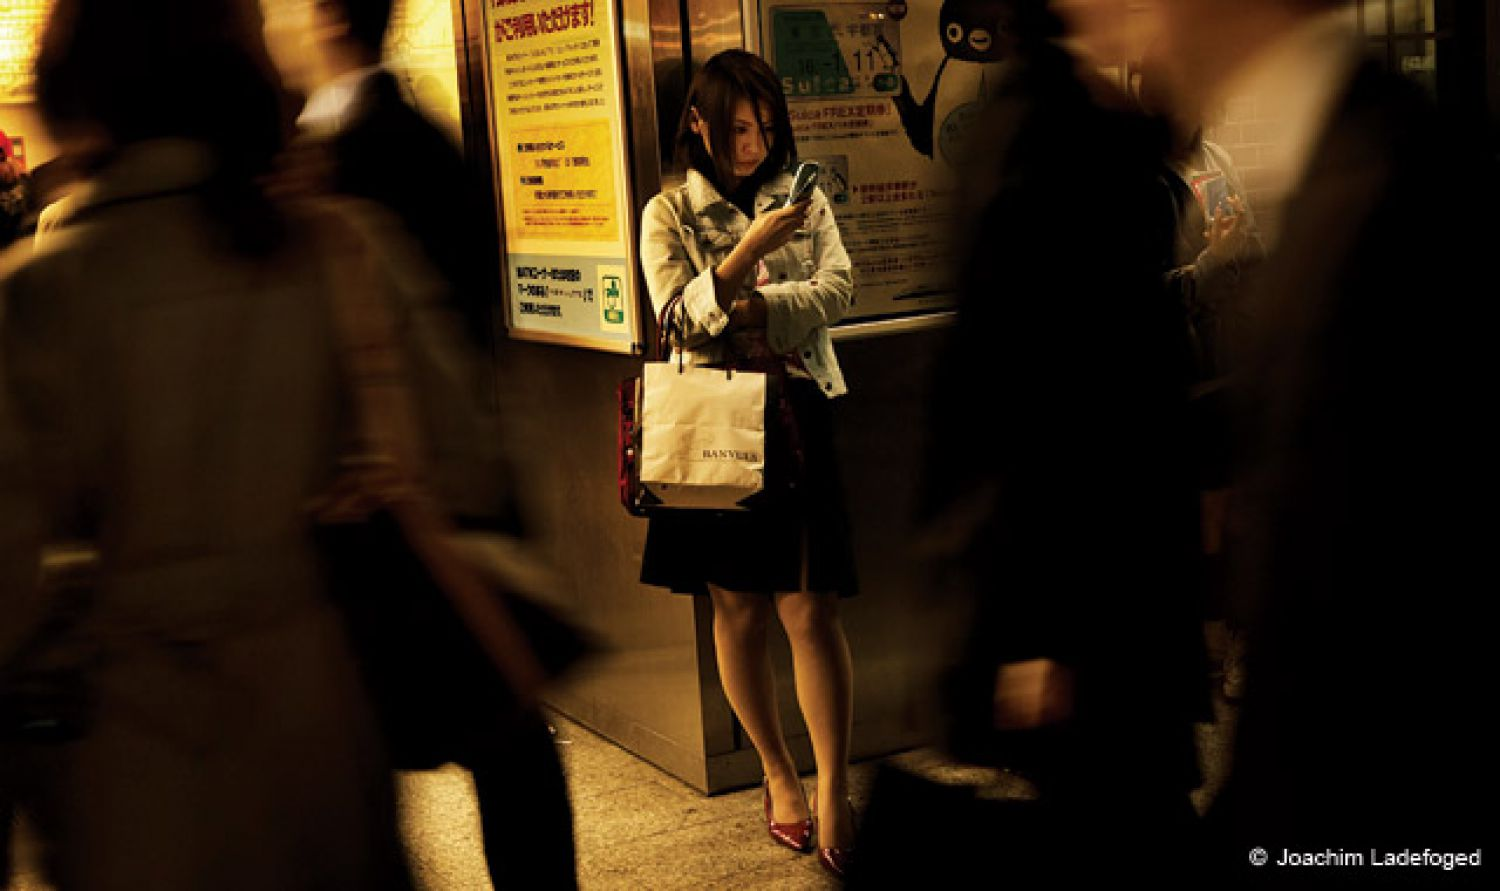 Joachim Ladefoged joined VII Photo Agency in 2004. He's a prolific photojournalist, and he pursues myriad personal projects in concert with his news photography. Above: Train station, Harajuku, Tokyo. Tokyo is an archetype of the modern metropolis. Amid the restlessness, as though protected by the never-ending din of humanity within the city, people take a break by managing to huddle in deserted stairways and corners.